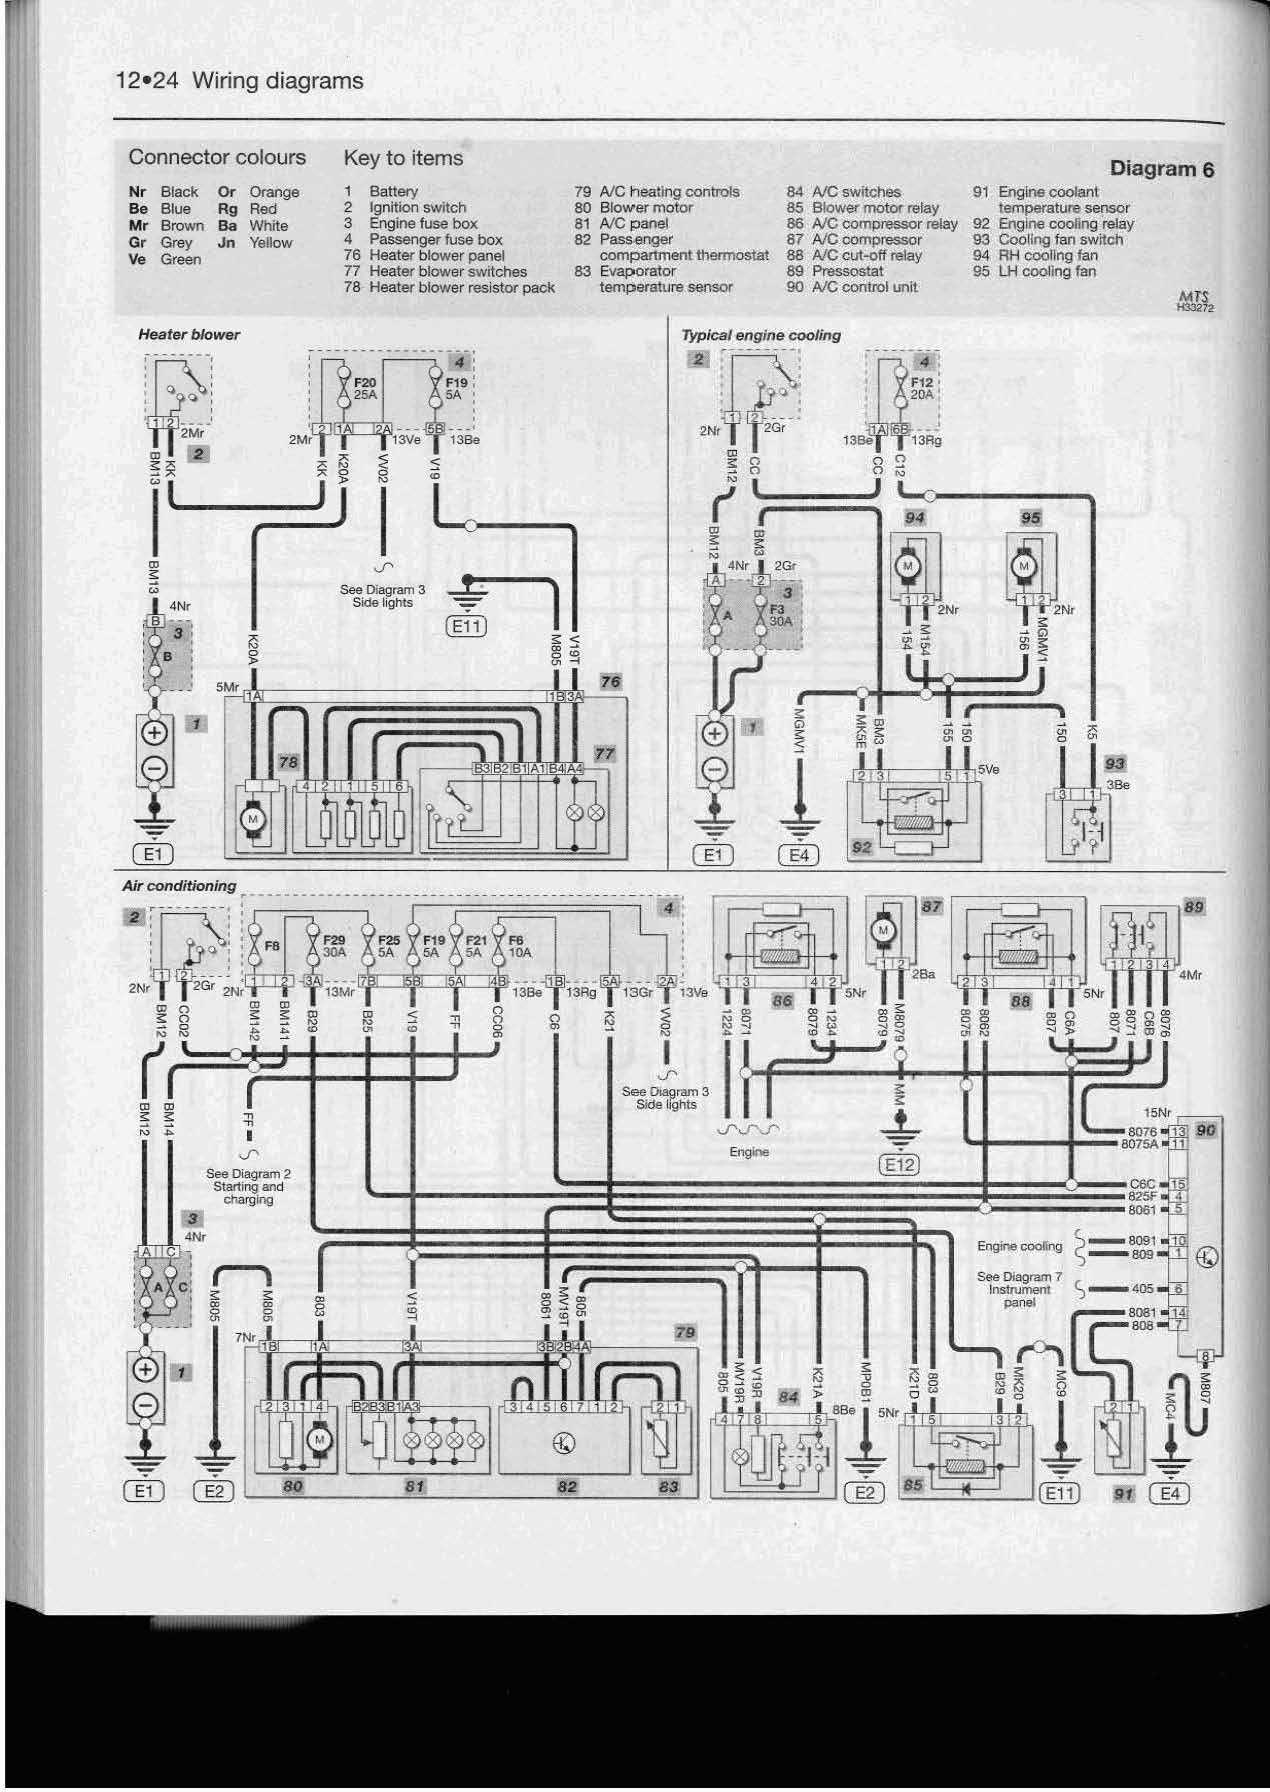 Manual Electrico De Peugeot Partner Citroen Berlingo En Taringa 2 0 Hdi Engine Diagram